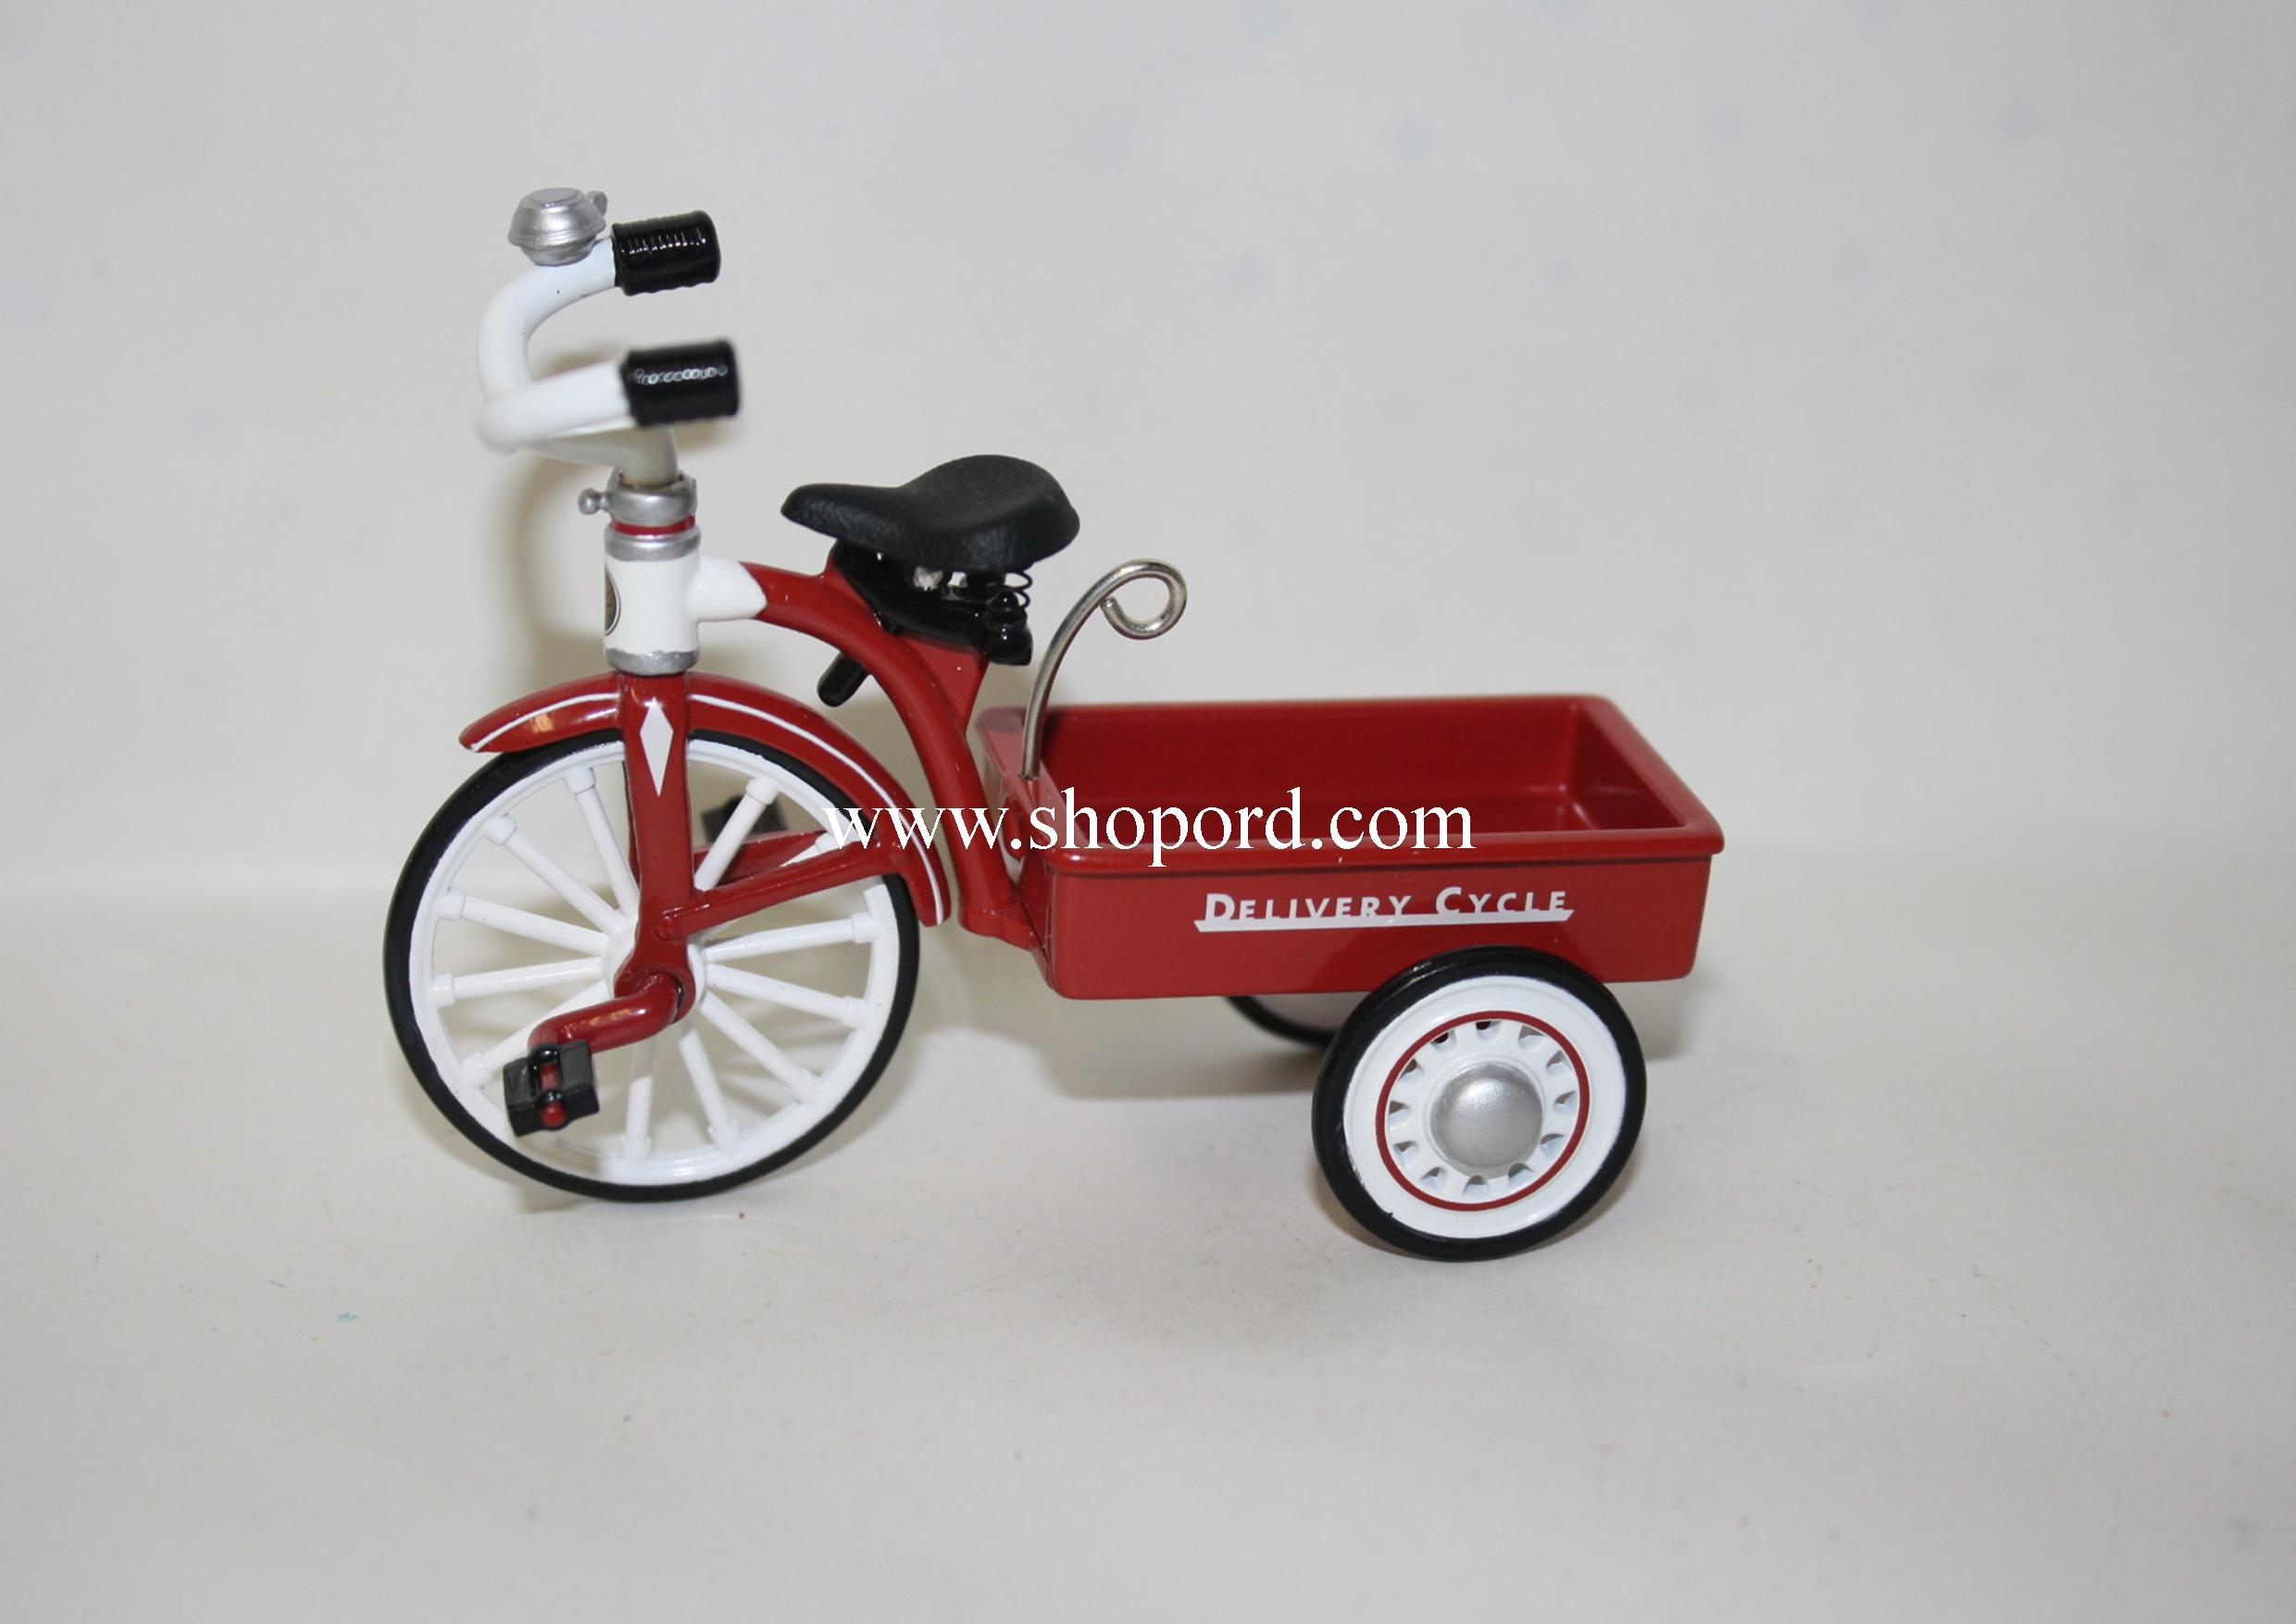 Hallmark 1999 Garton 1950 Delivery Cycle 3rd In The Sidewalk Cruisers Spring Ornament QEO8367 Damaged Box